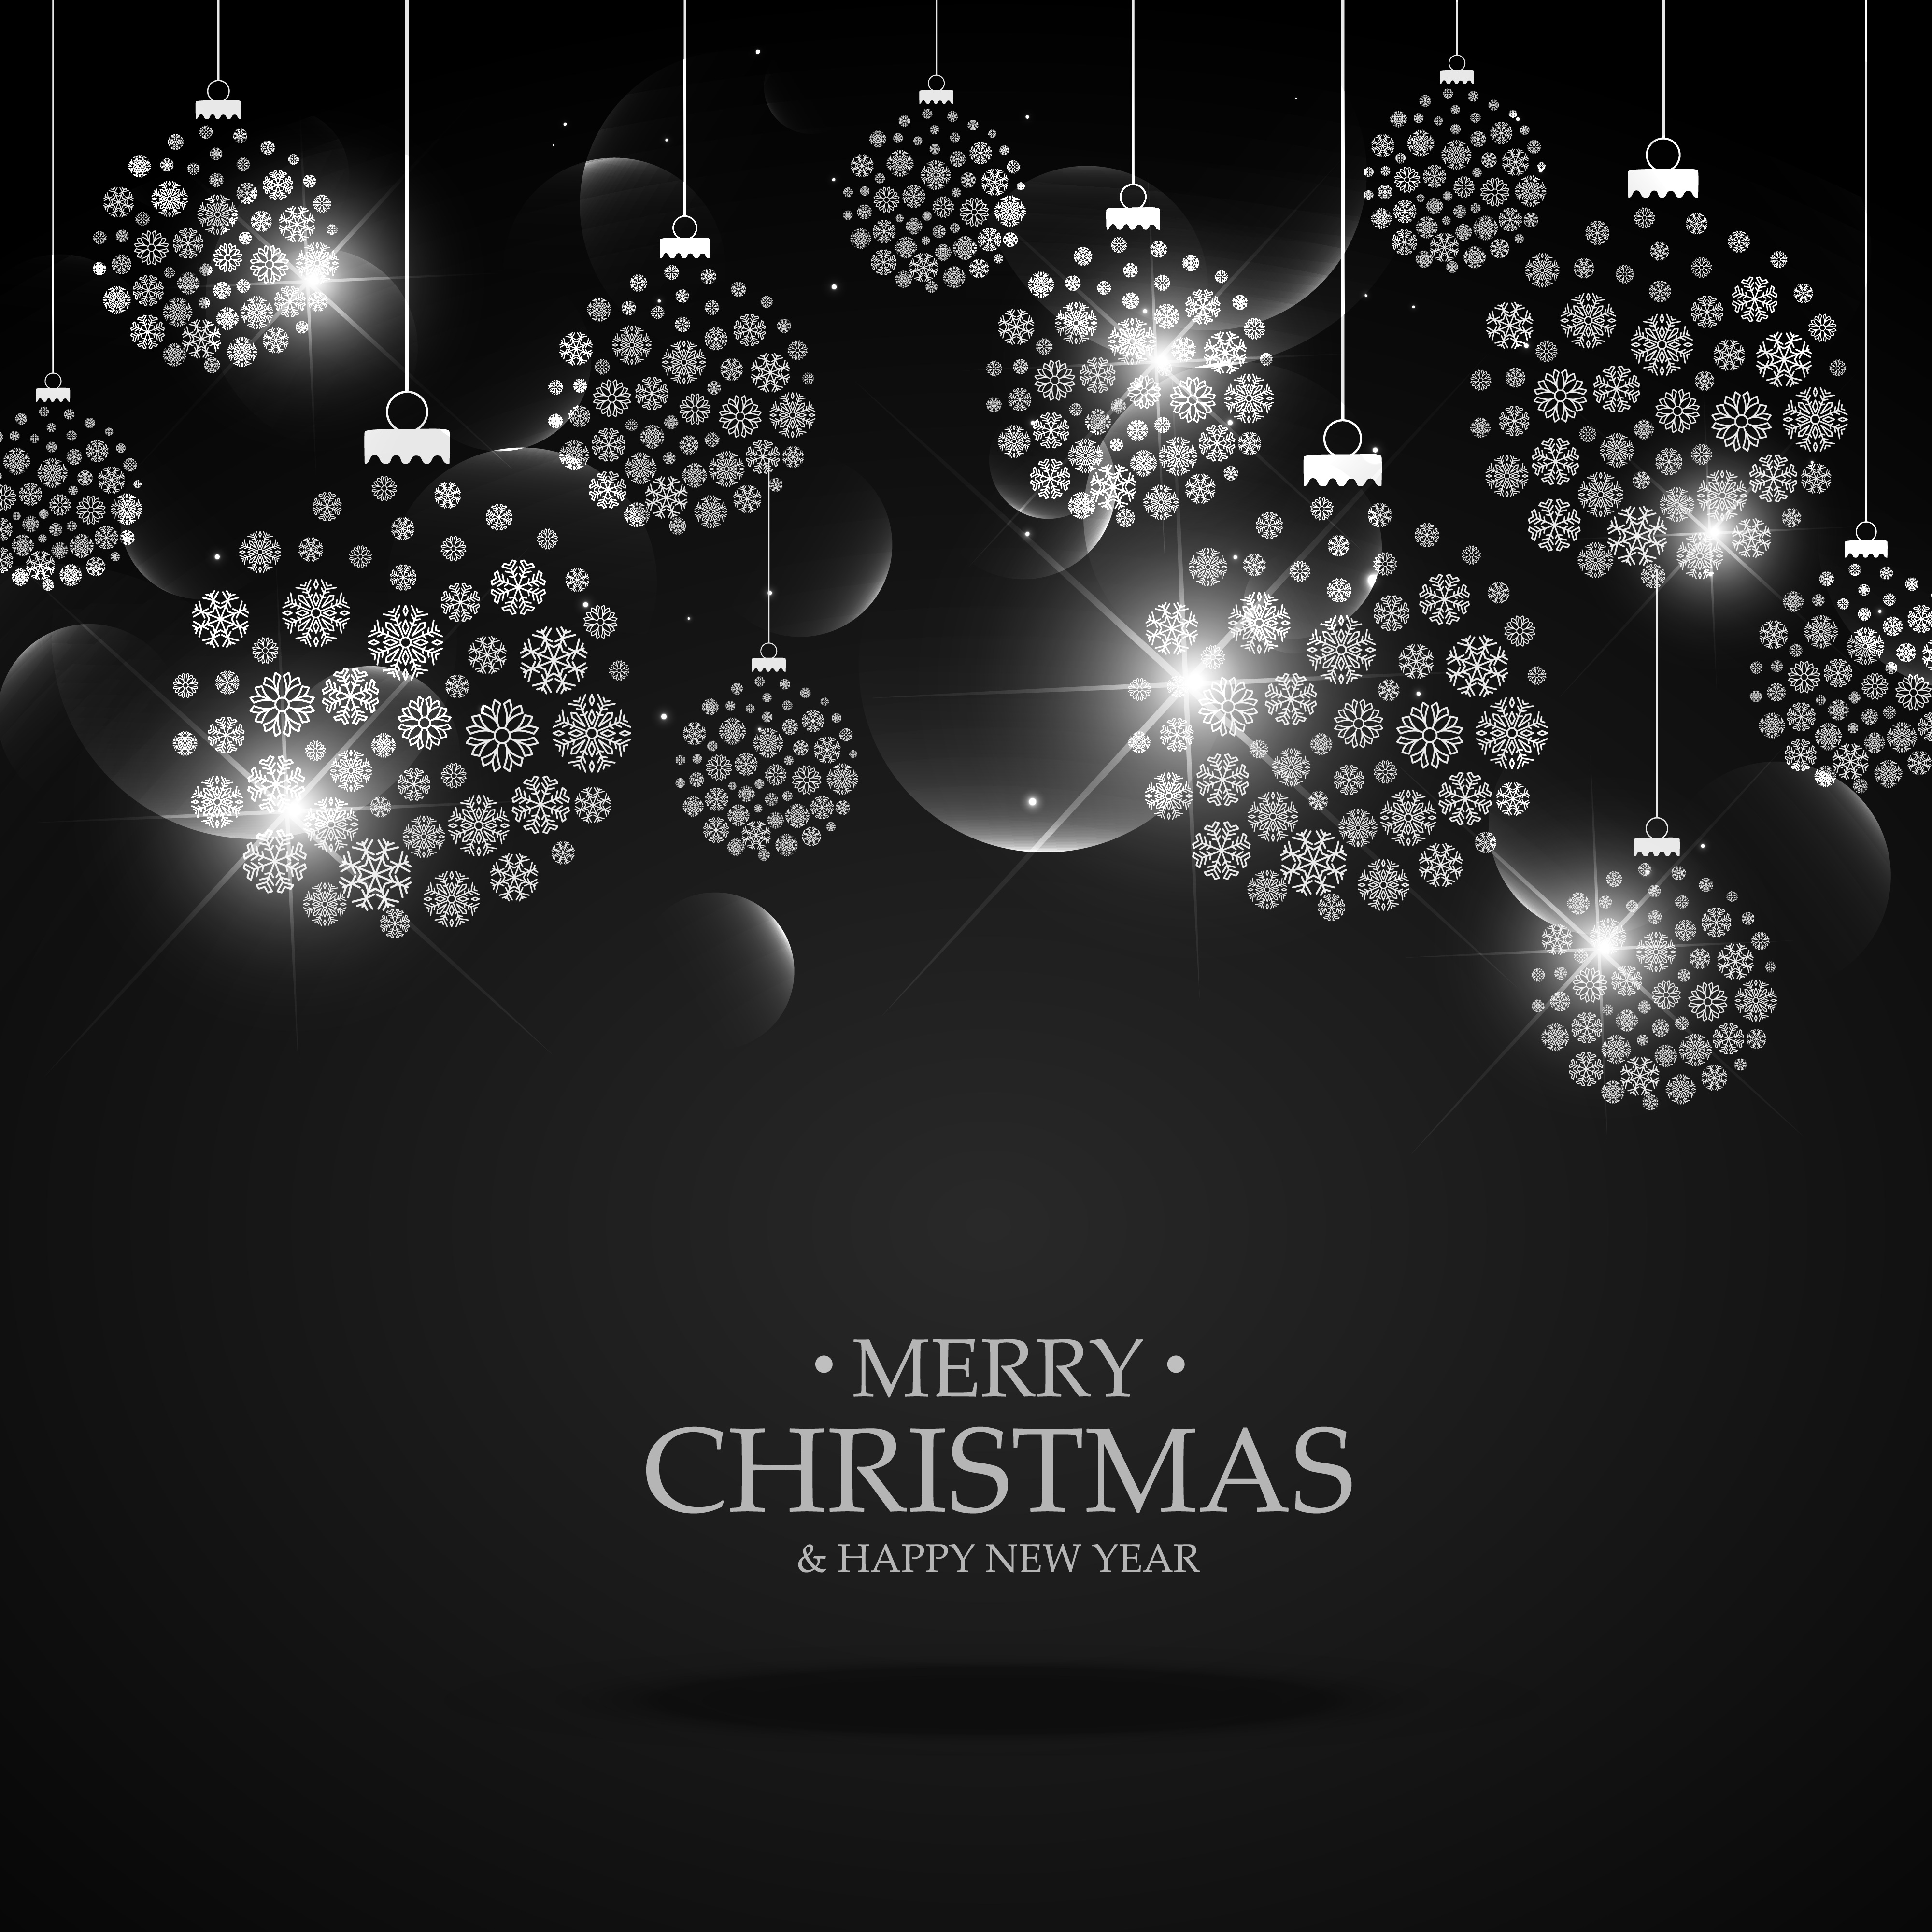 black background with hanging christmas festival balls made with